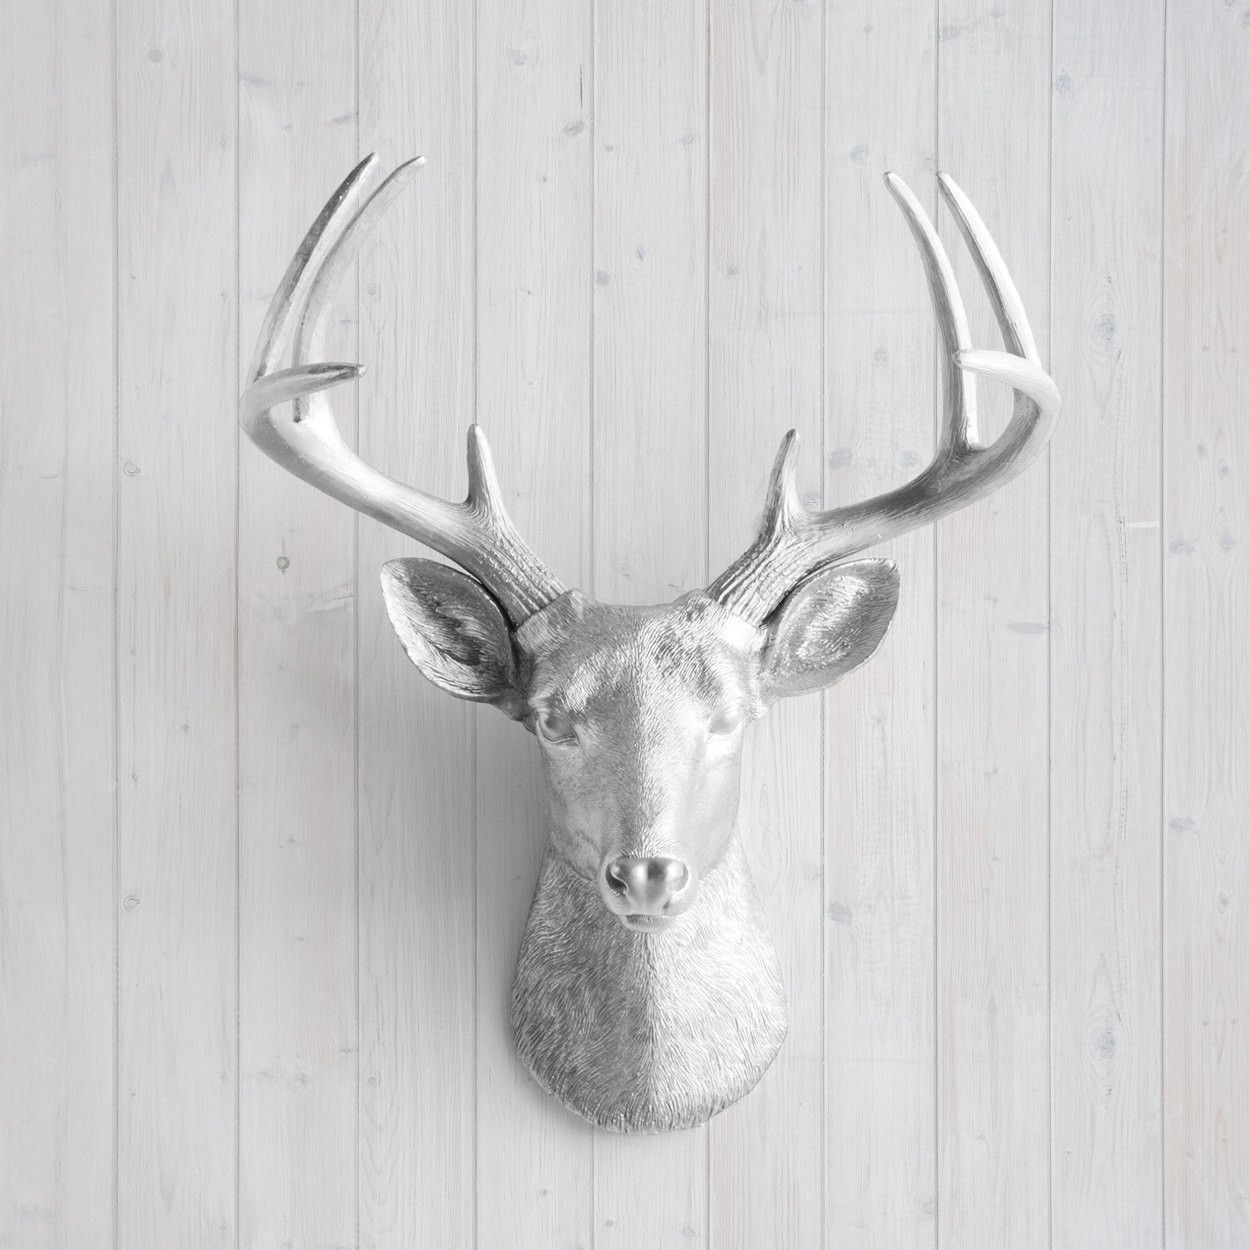 The Virginia Large Silver Faux Taxidermy Resin Deer Head Wall Mount Stag W